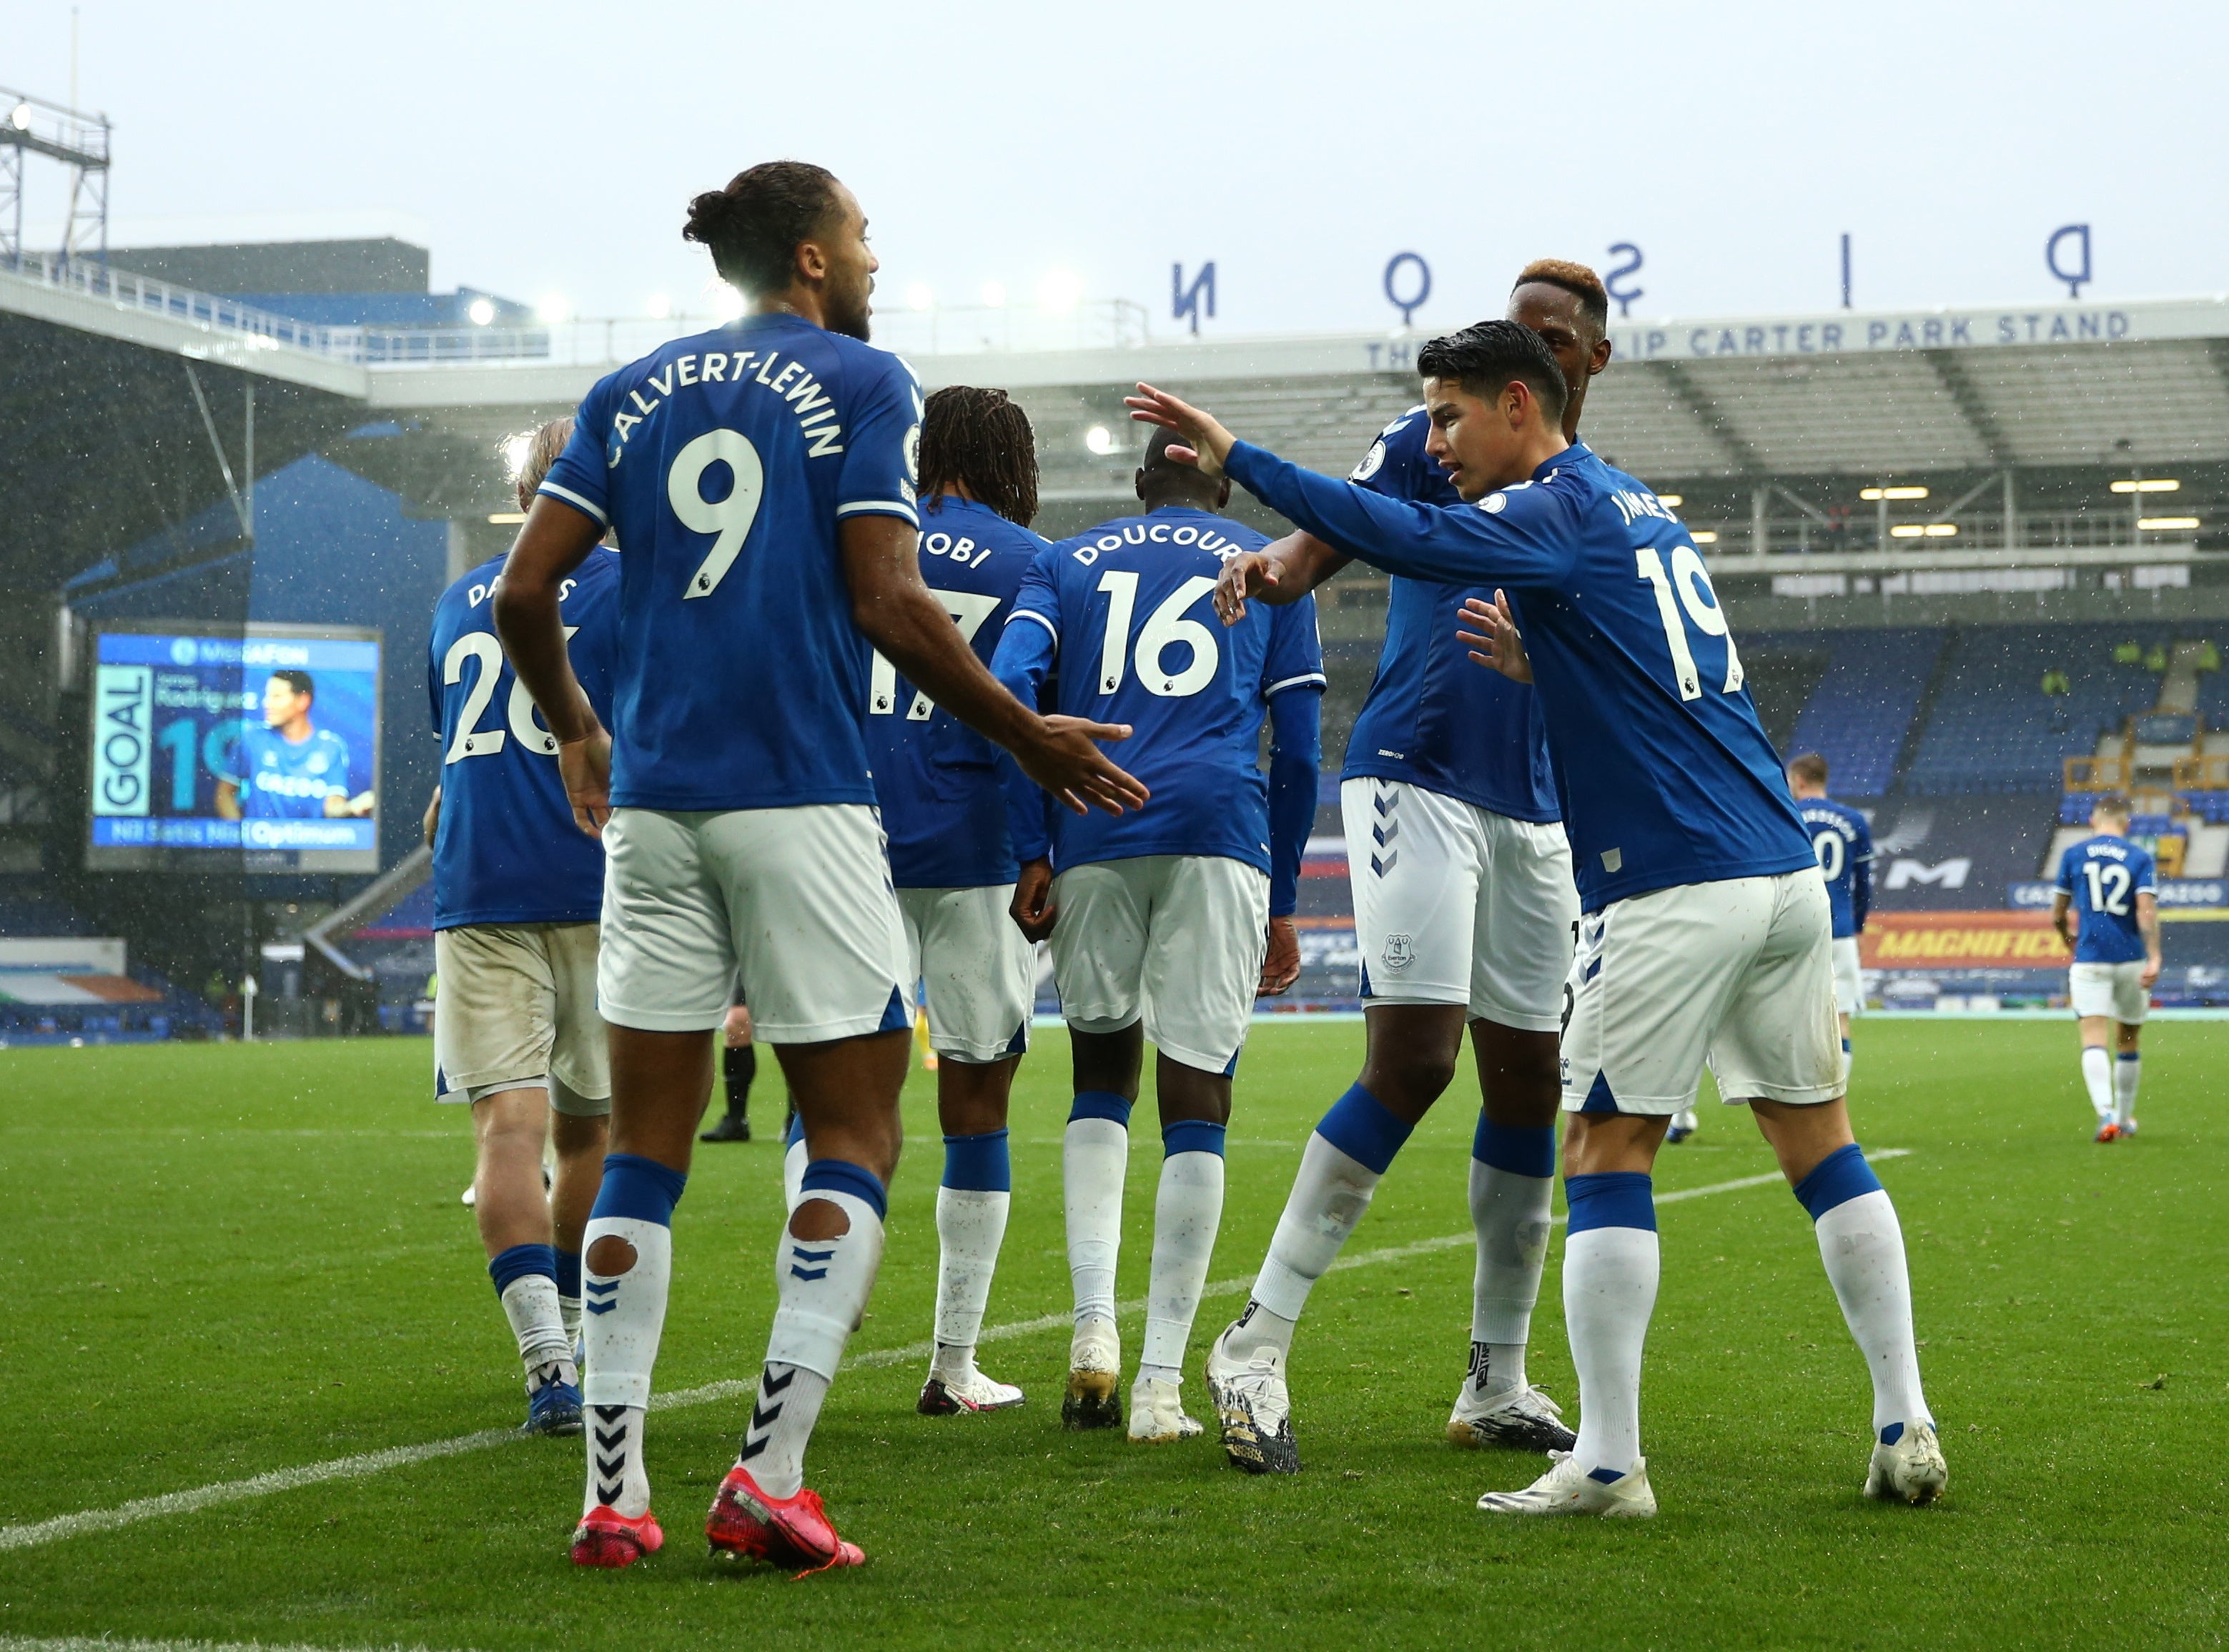 Everton Vs Brighton Live Result And Reaction From Premier League Fixture Today The Independent